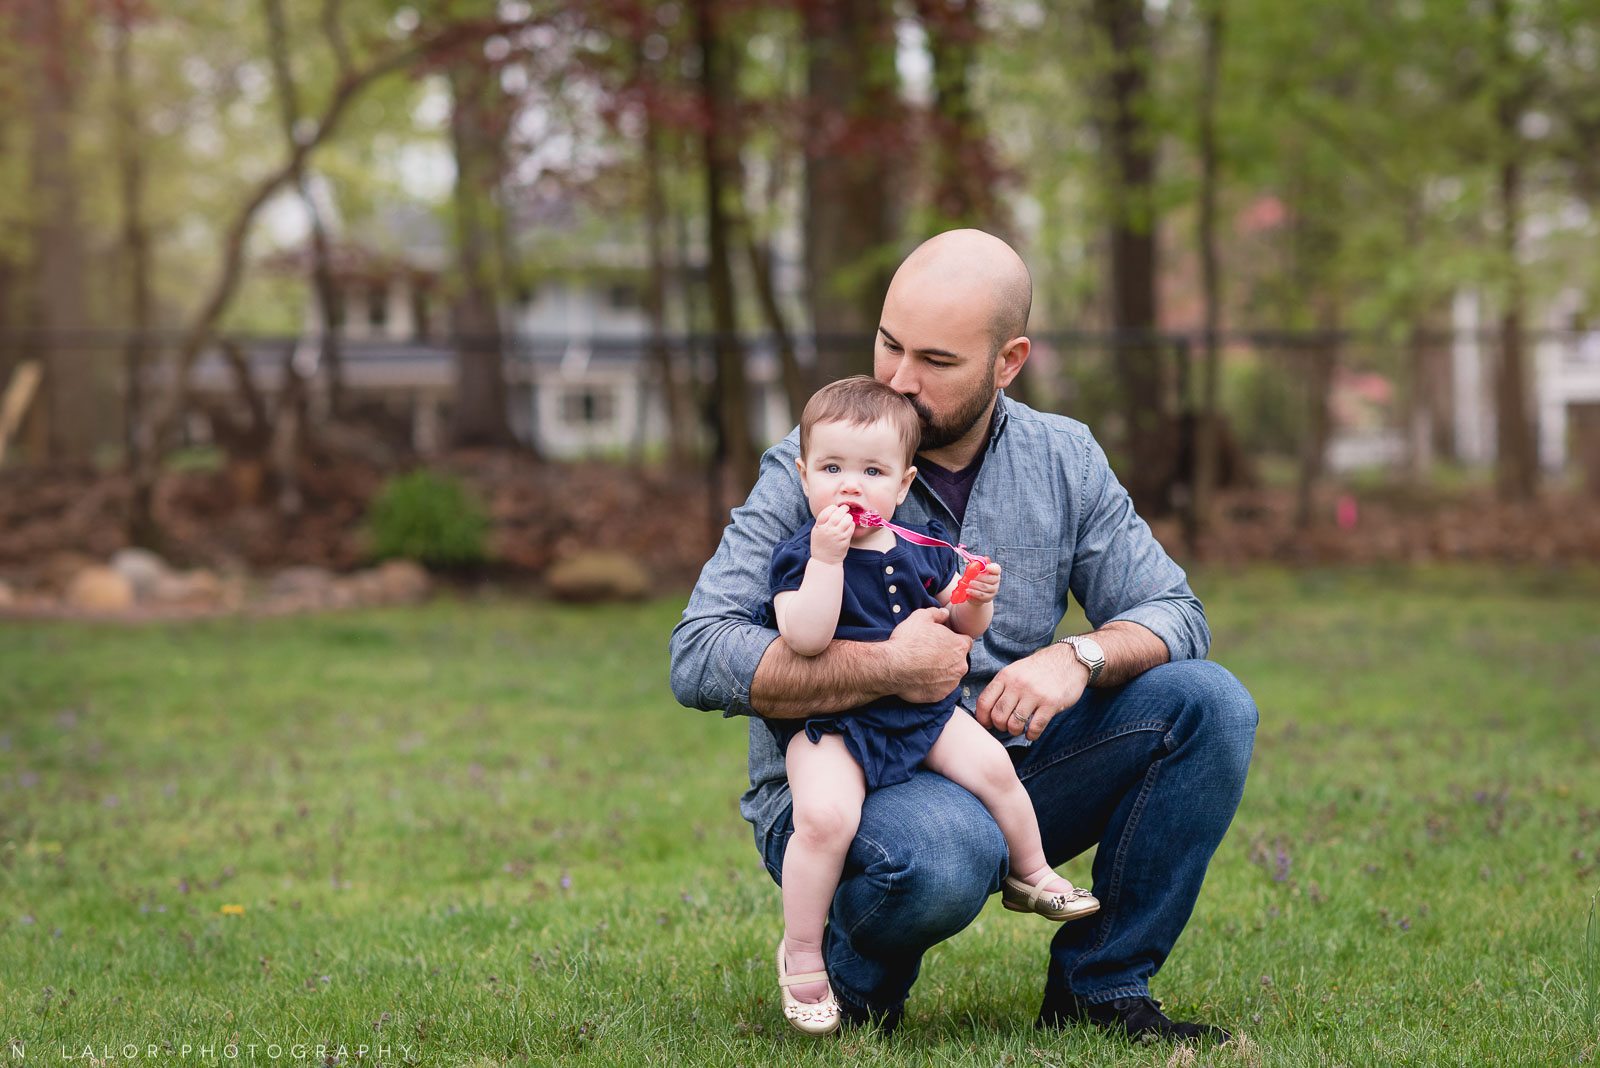 Father with his 1-year old daughter. Outdoor lifestyle image by N. Lalor Photography.